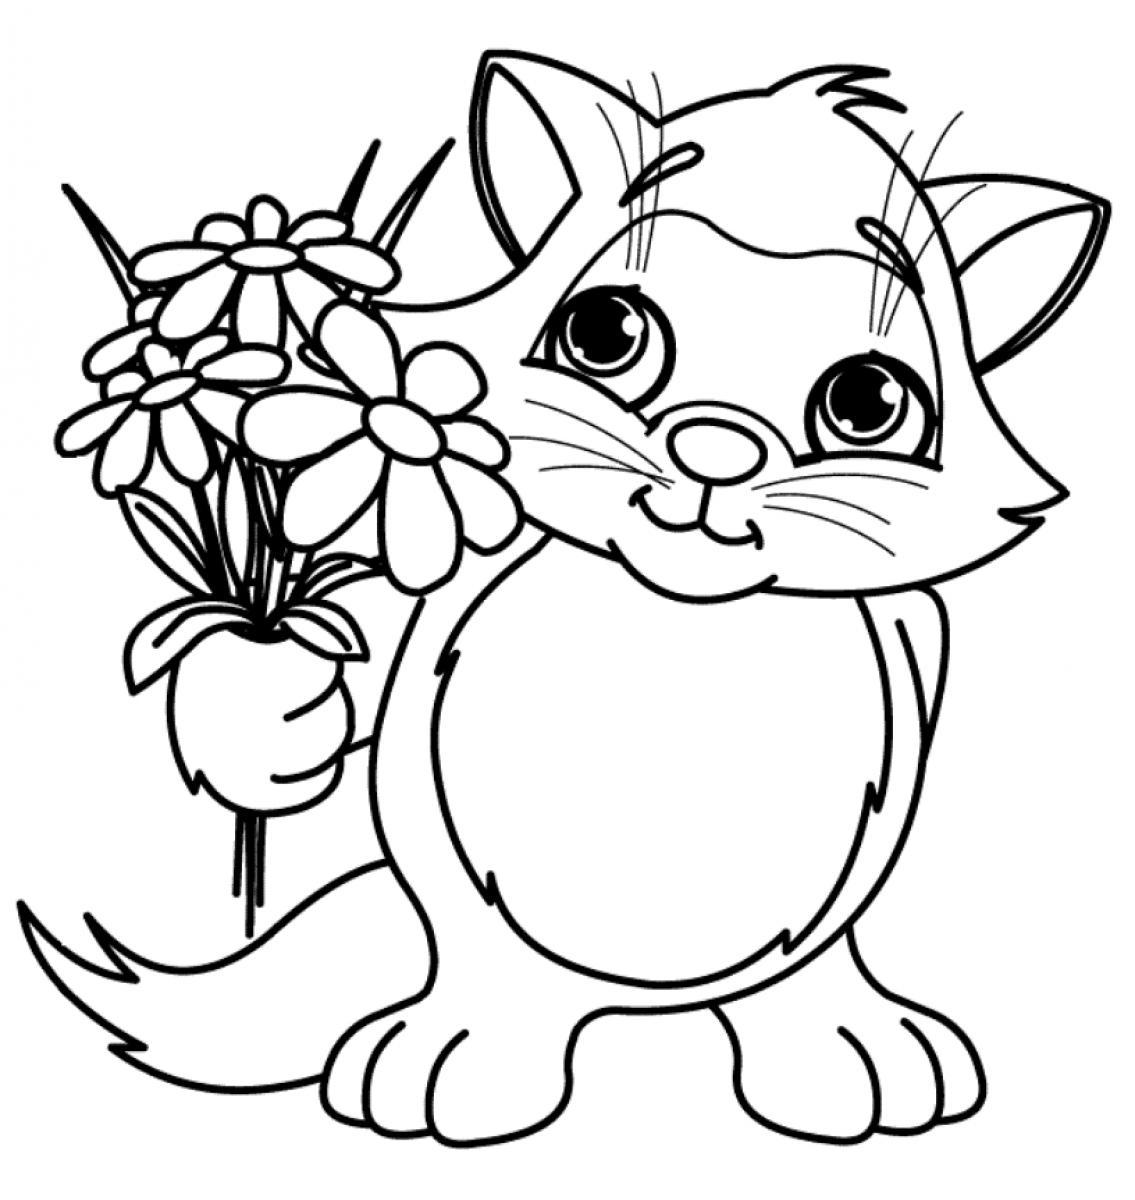 cute kitten colouring pages puppy and kitten drawing at getdrawings free download kitten pages colouring cute